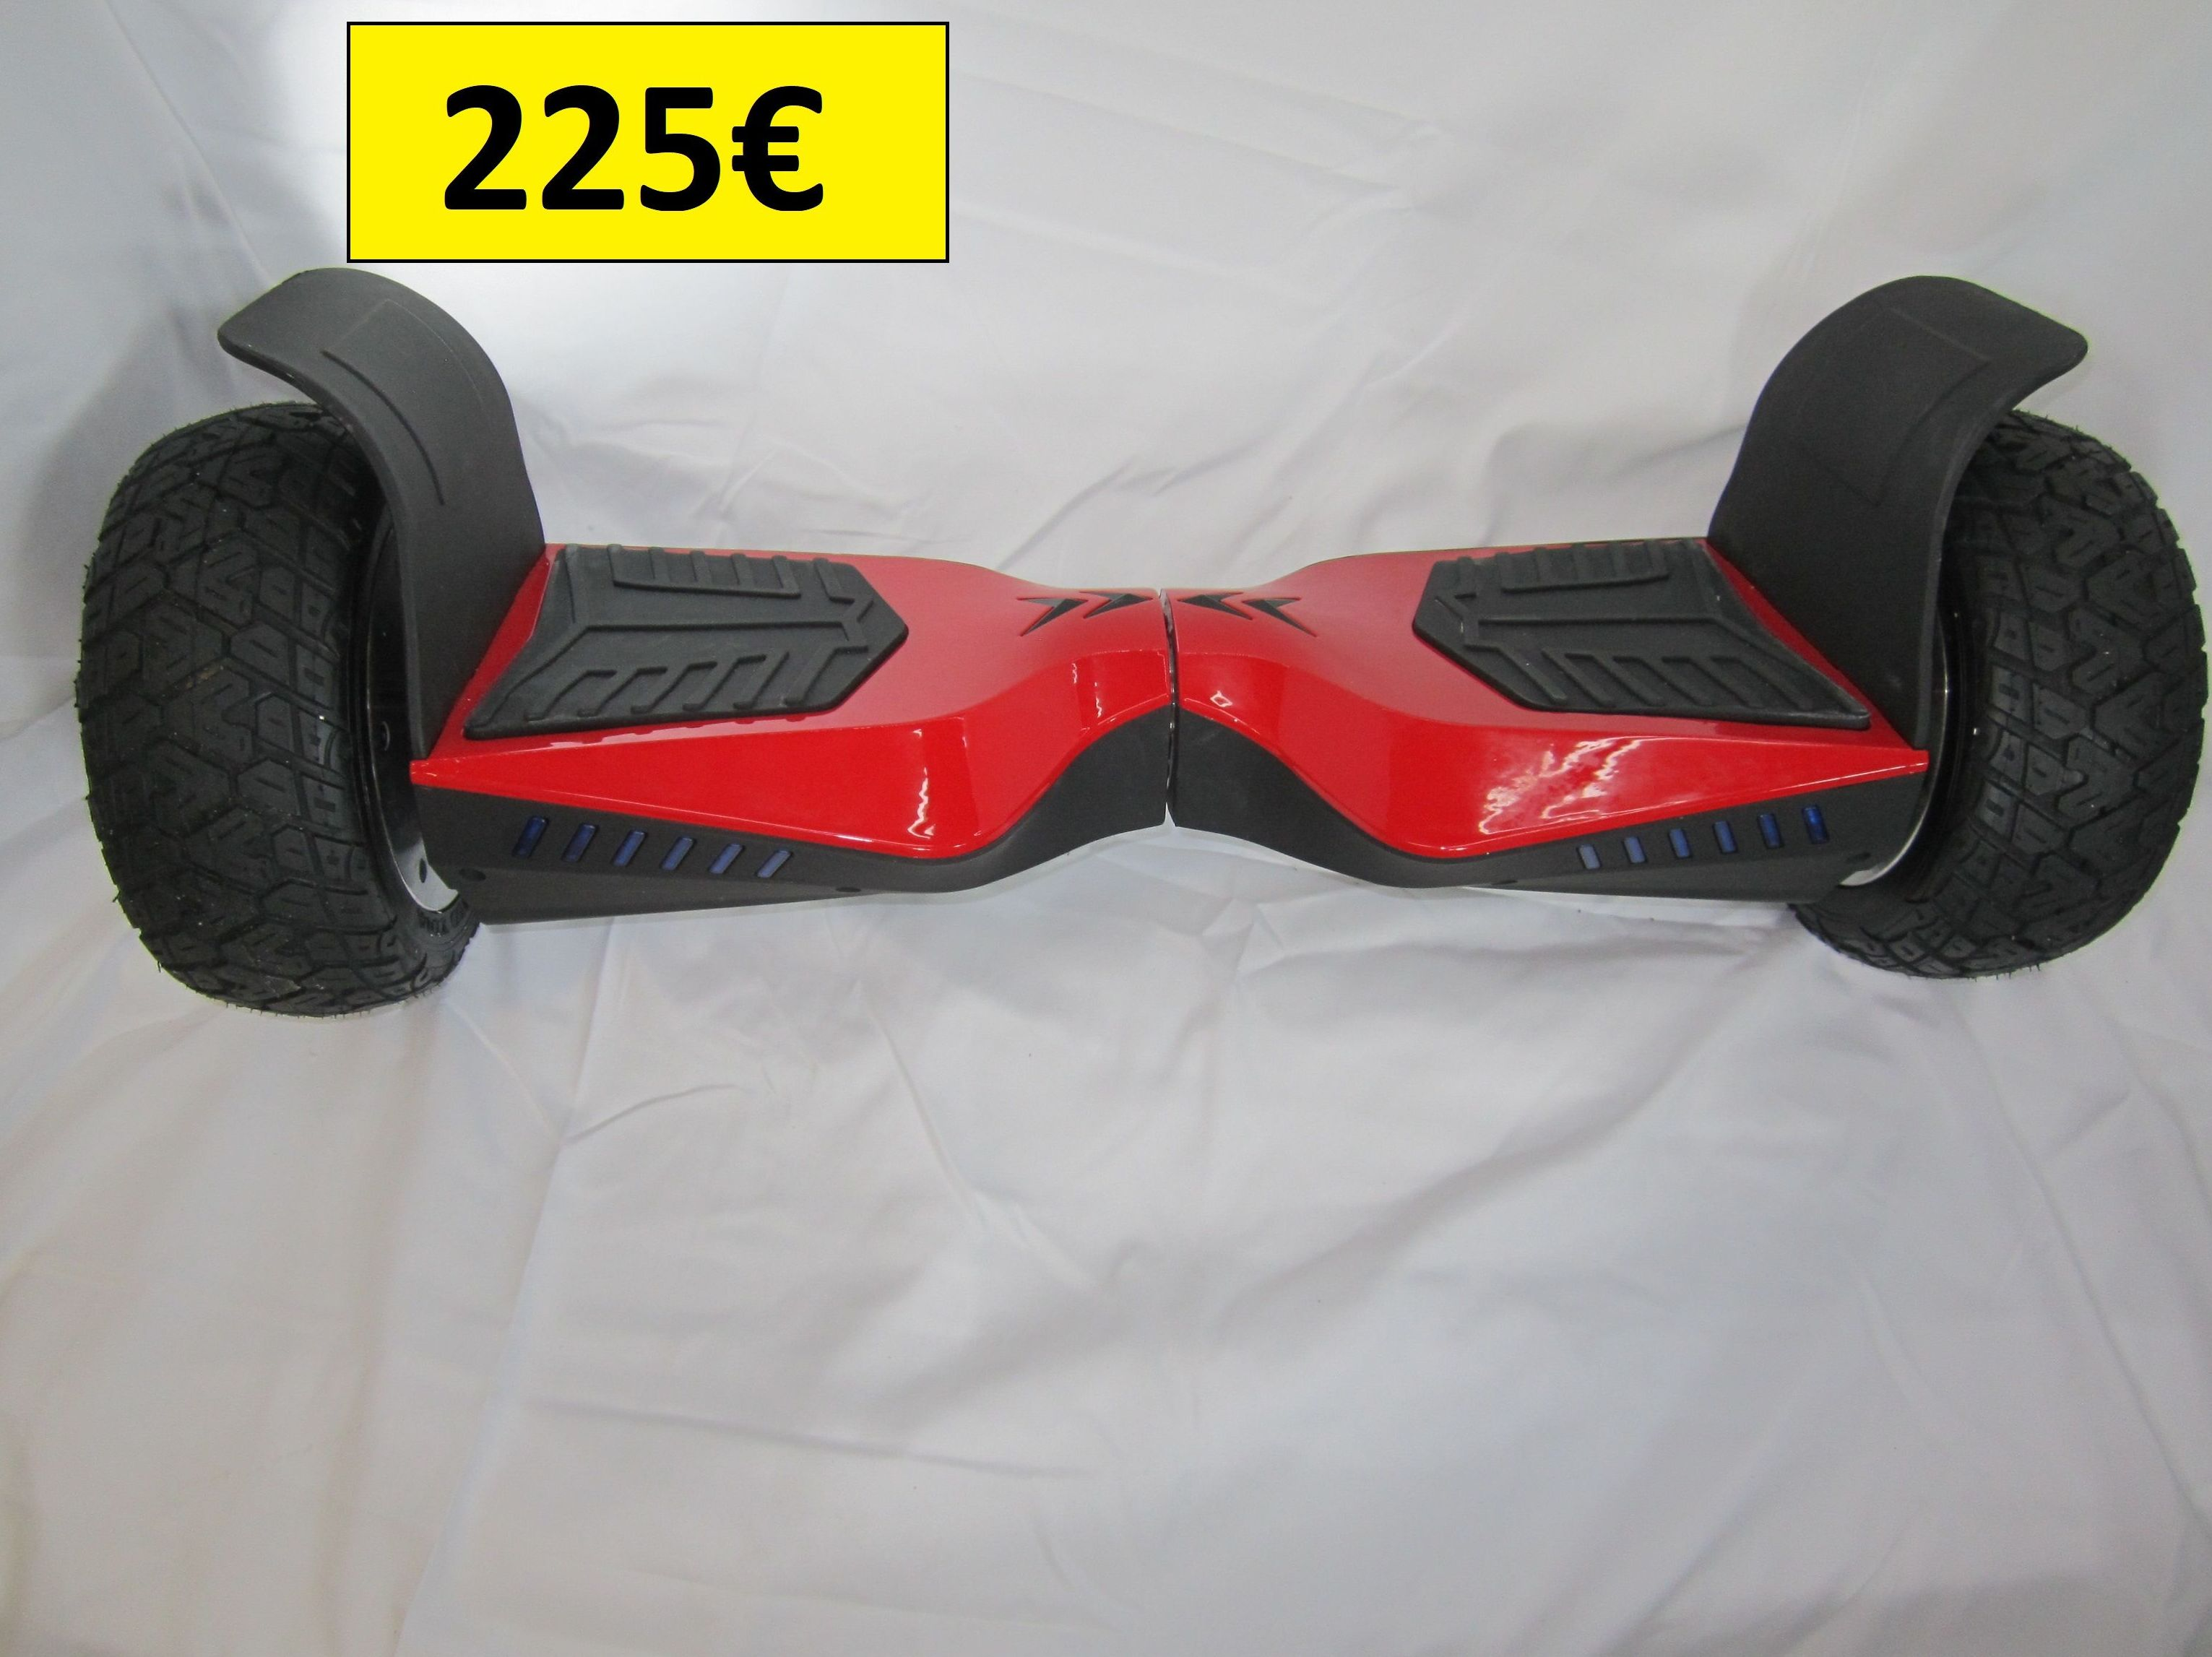 Hoverboard HUMMER 225€ varios colores.: Productos y servicios de Scooter Family Electric (PATIPACO)